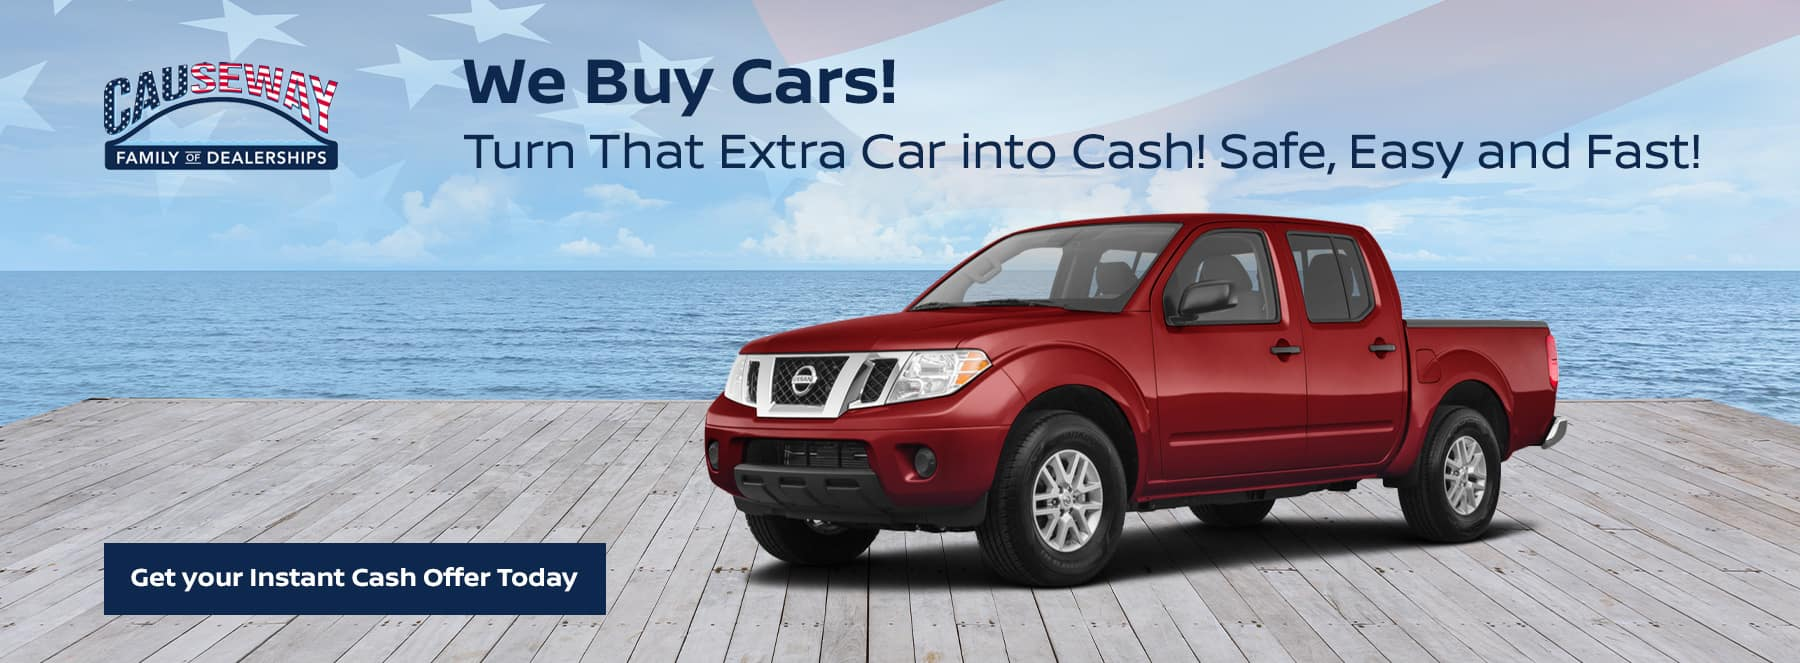 We Buy Cars! Subtext: Turn That Extra Car into Cash! Safe, Easy and Fast!